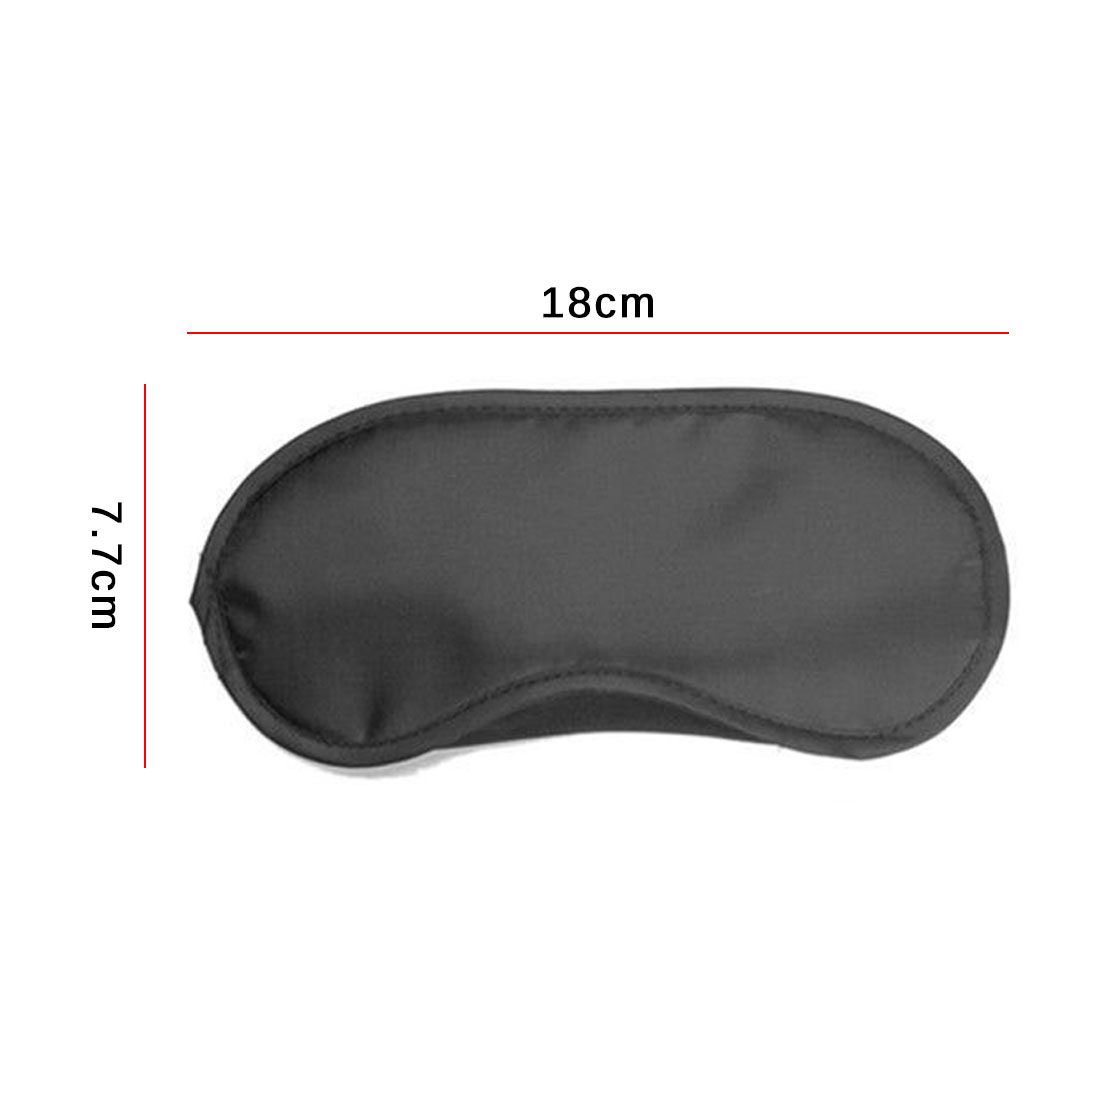 1pcs Pure Silk Sleep Eye Mask Padded Shade Cover Travel Relax Aid Non-woven Sleep eye mask 3